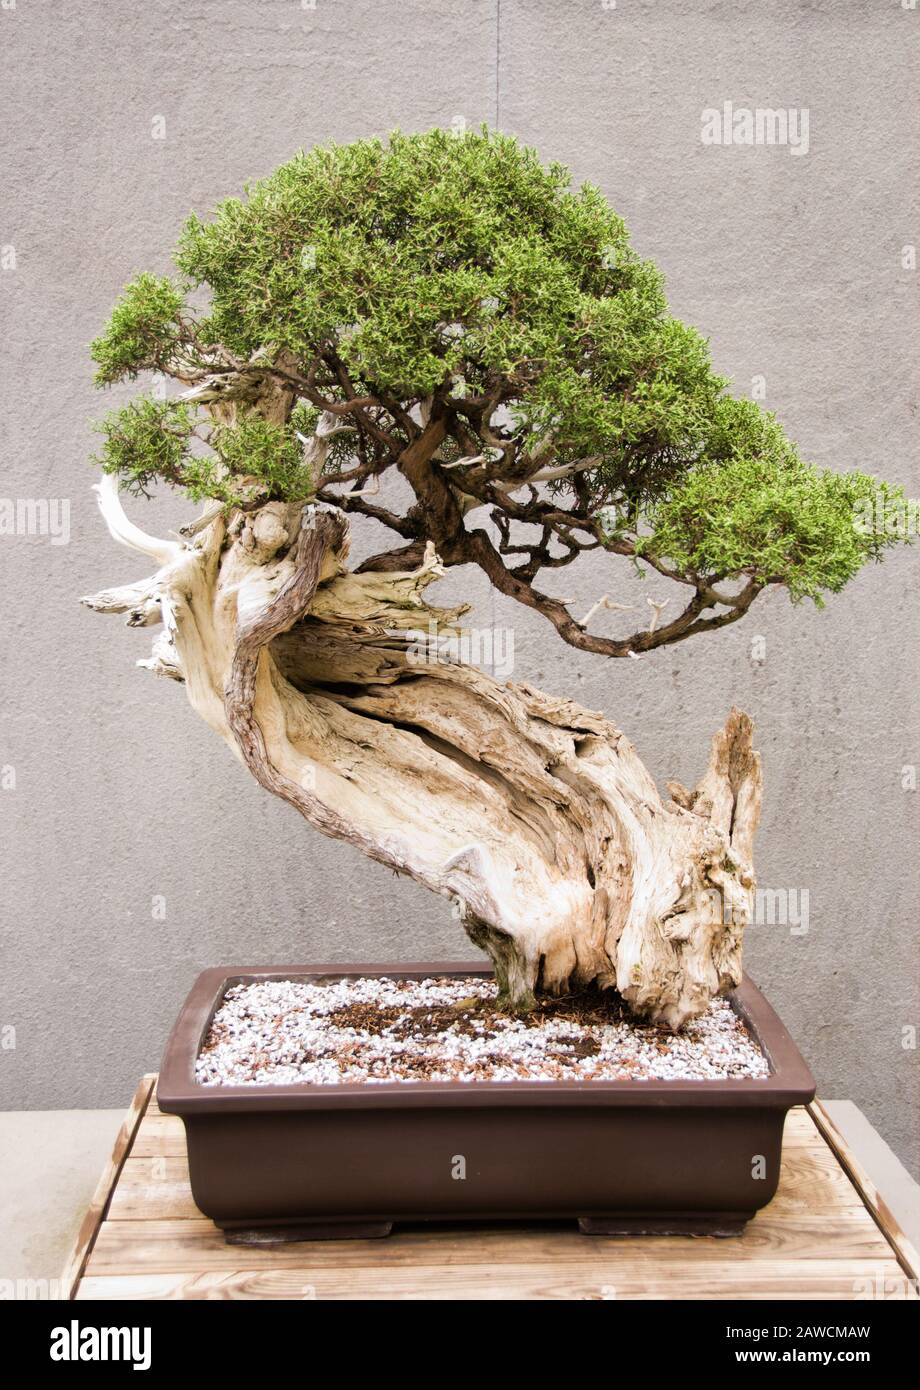 Miniature Mature California Juniper Bonsai Tree Growing In A Potted Container Stock Photo Alamy